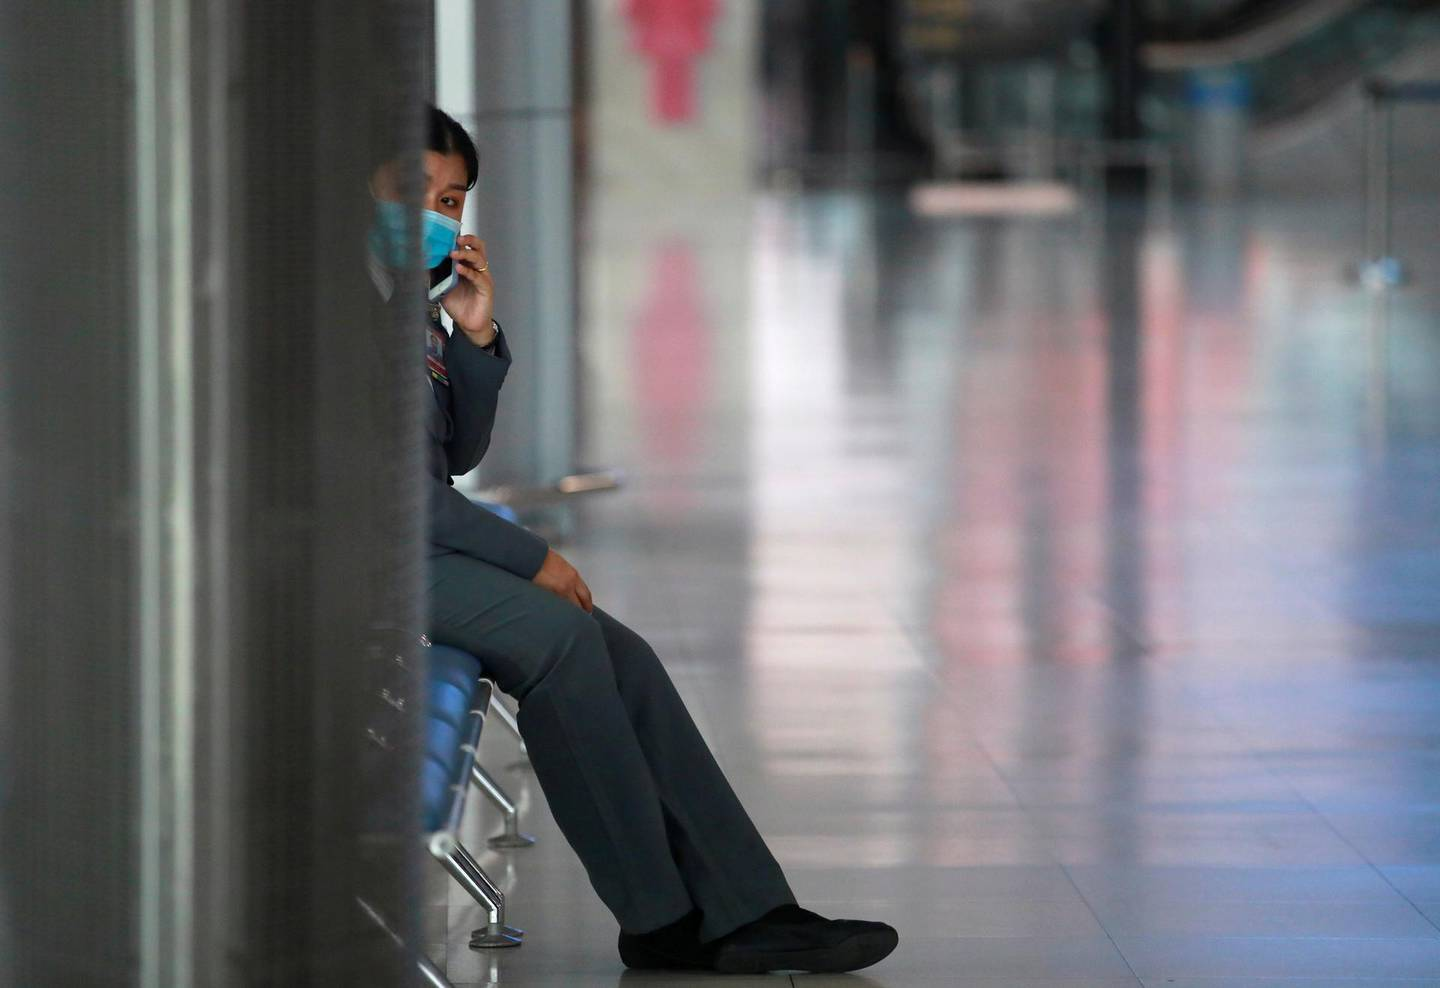 A staff wearing a protective face mask uses her phone at Suvarnabhumi Airport as the government extends a ban on incoming passenger flights until the end of April, following the coronavirus disease (COVID-19) outbreak, in Bangkok, Thailand April 16, 2020. REUTERS/Soe Zeya Tun